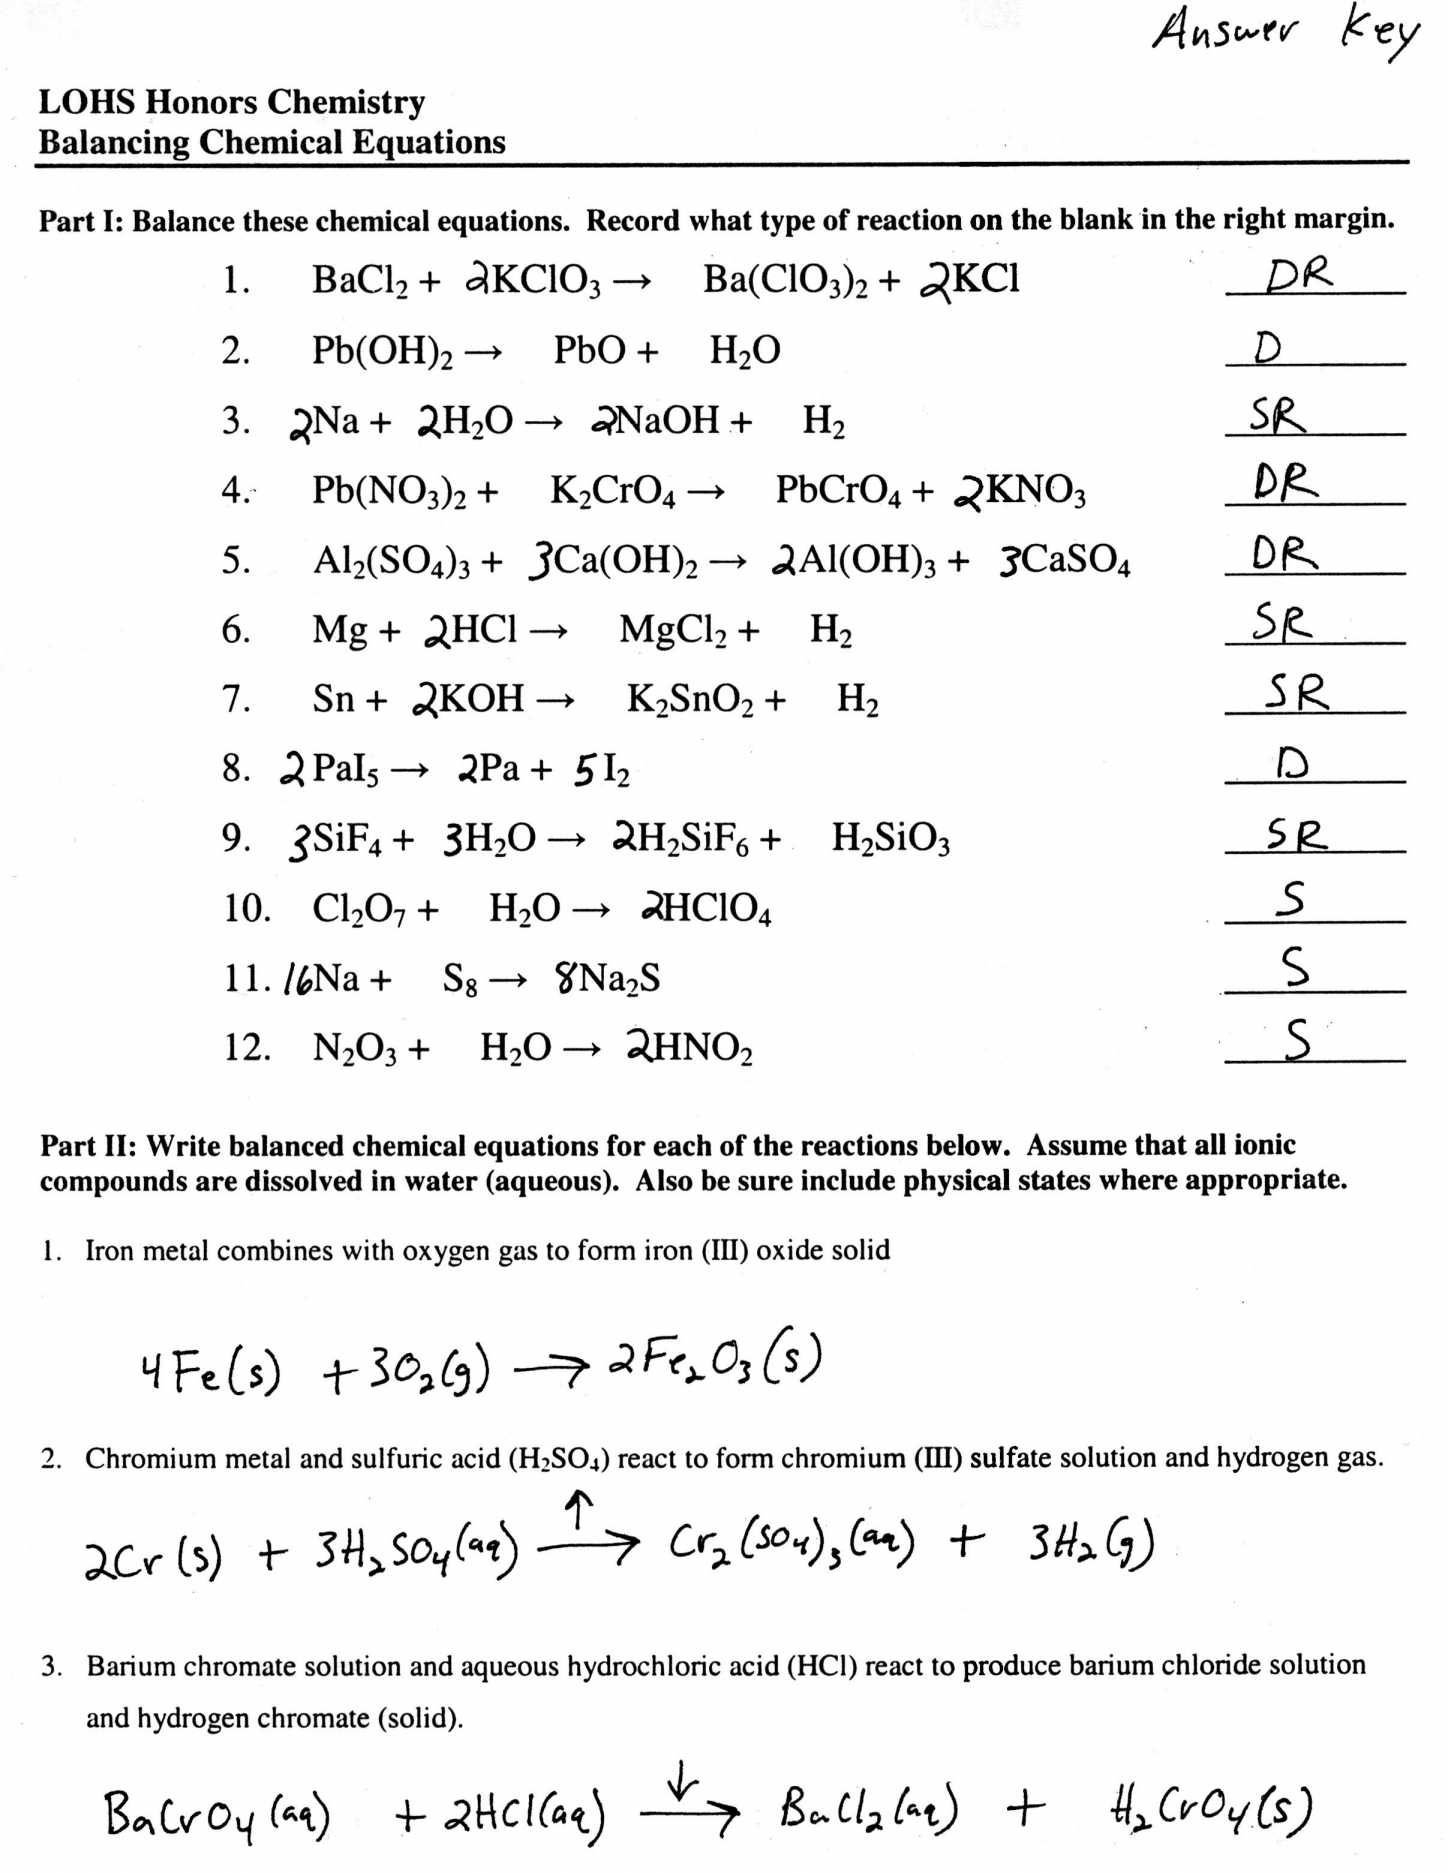 Monatomic Ions Worksheet Answers